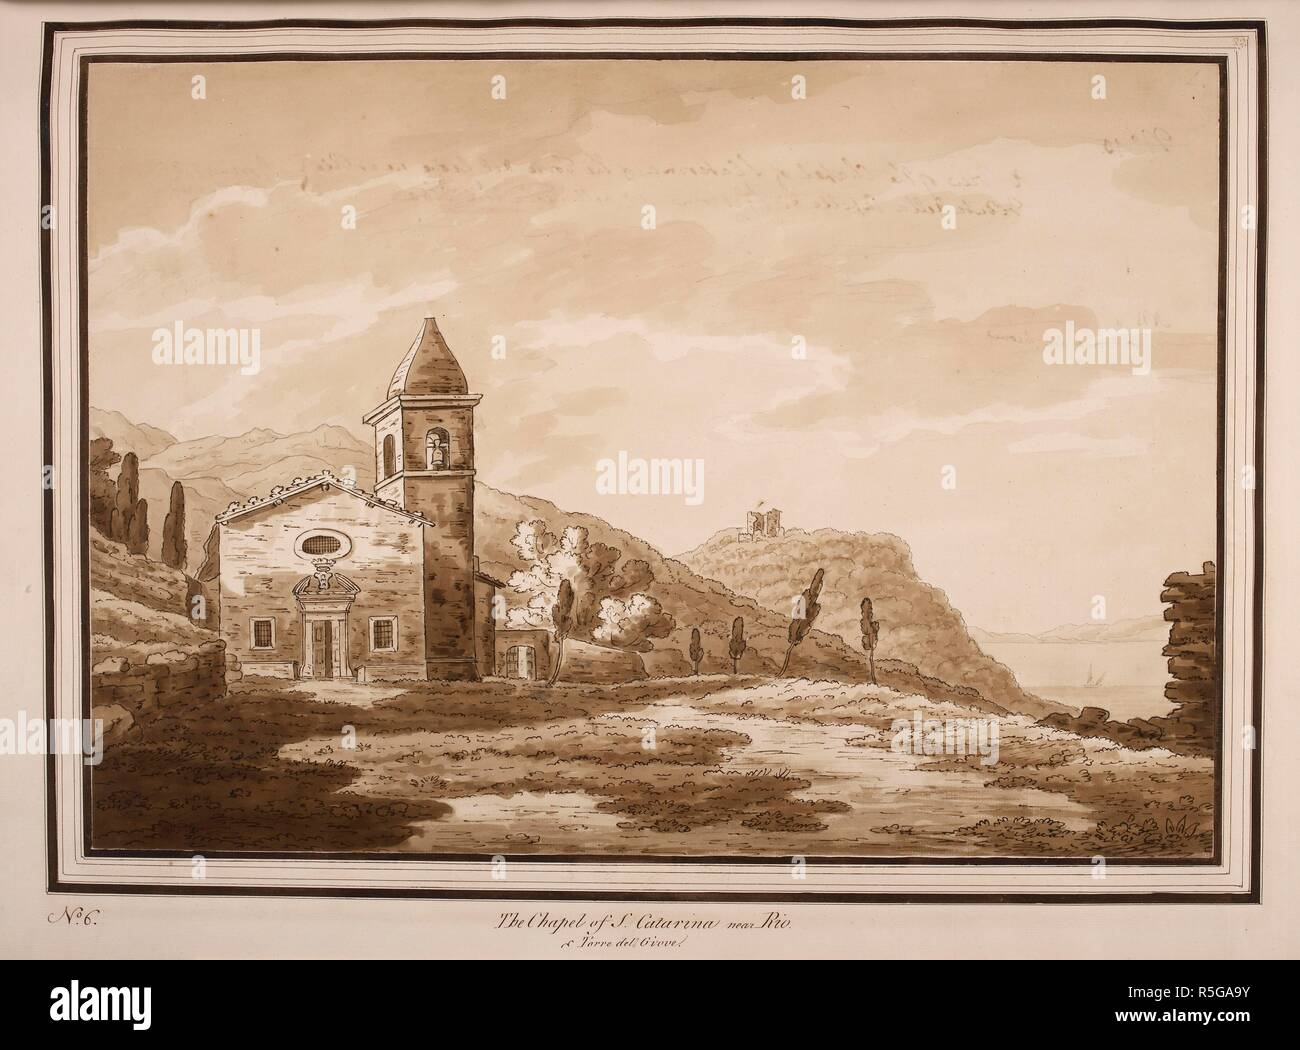 'The chapel of s. Caterina near Rio . JOURNAL of a Tour through the Island of Elba, 26 Apr.-5 May 1789, by Sir Richard Colt Hoare, 2nd Bart., of Stourhead, the Wiltshire antiquary and archaeologist, preceded by a map of the island and followed by thirty-two sepia wash sketches, the latter (except nos. 1, 14) being described and signed by Hoare on the back. The volume was written in 1793 and was published in 1814. Source: Add. 41761 f.34 no.6. Stock Photo